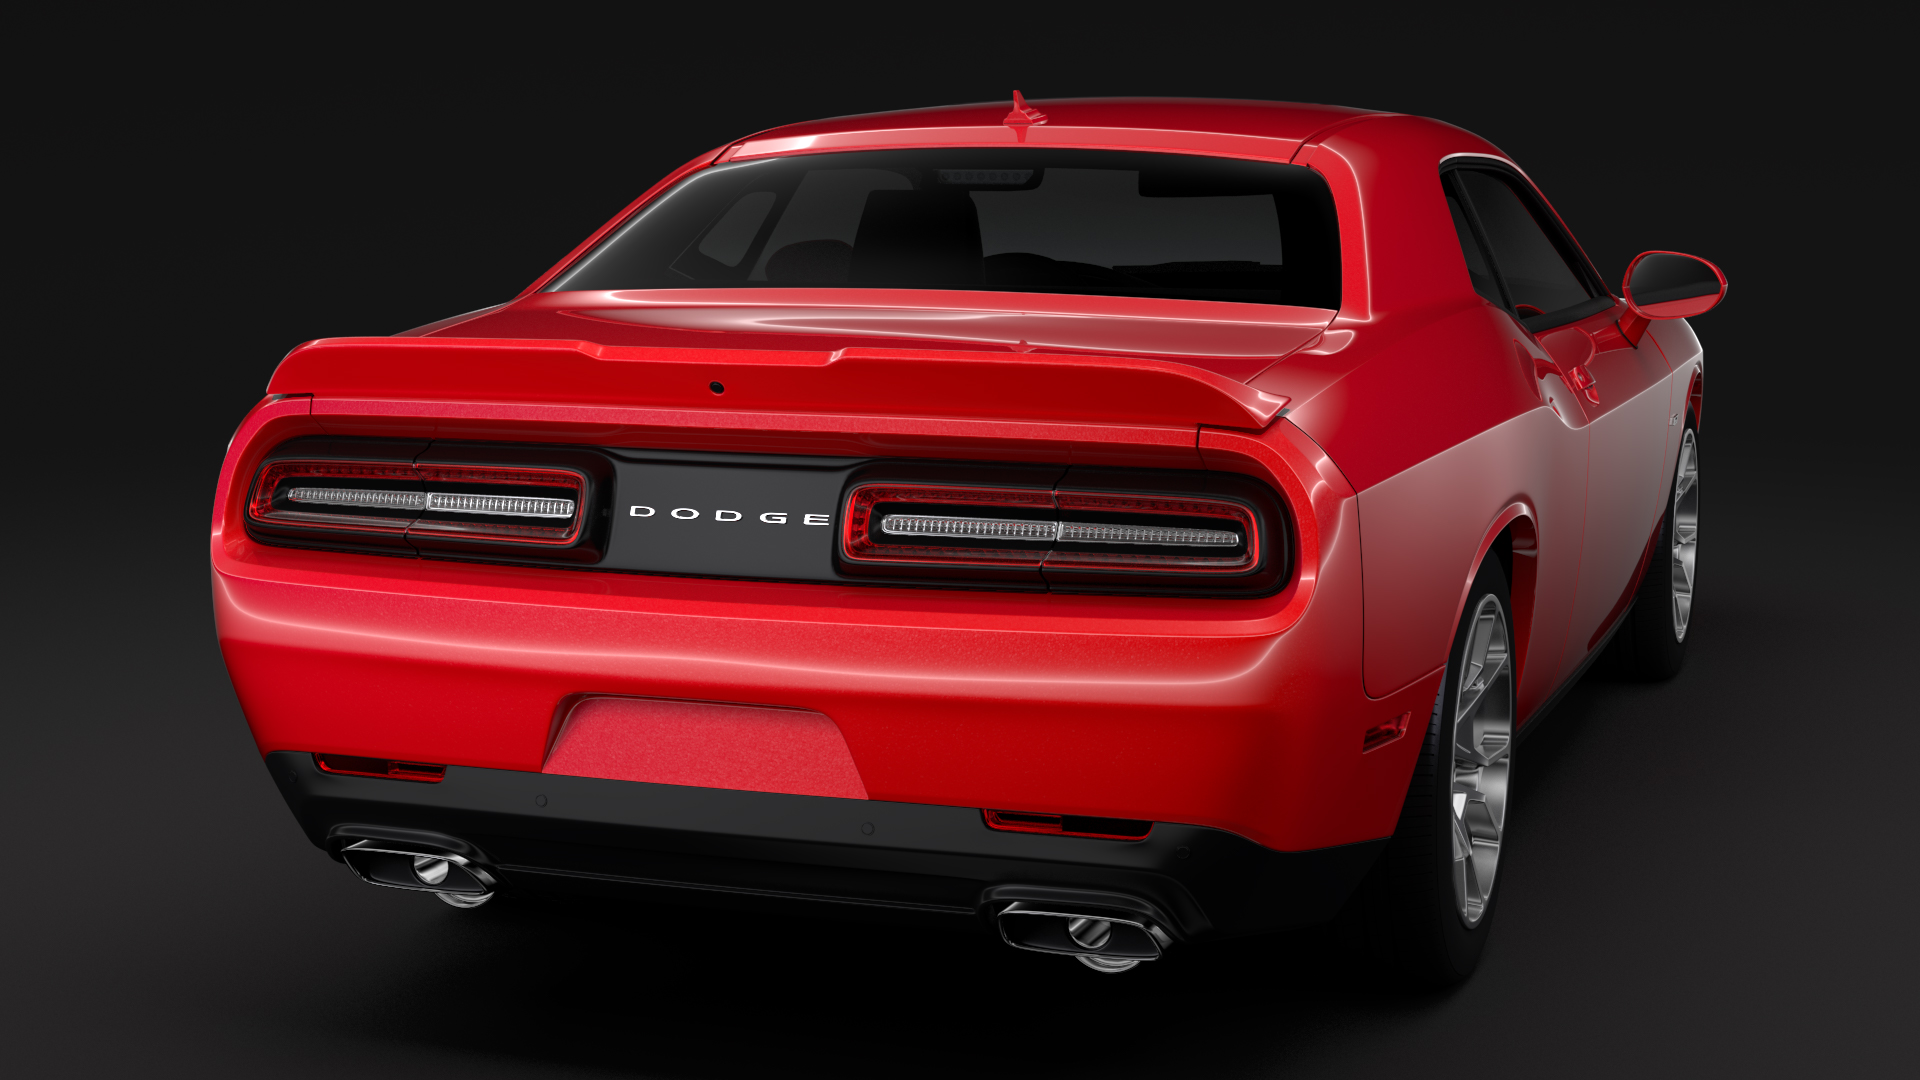 dodge challenger gt awd 2017 3d model buy dodge challenger gt awd 2017 3d model flatpyramid. Black Bedroom Furniture Sets. Home Design Ideas